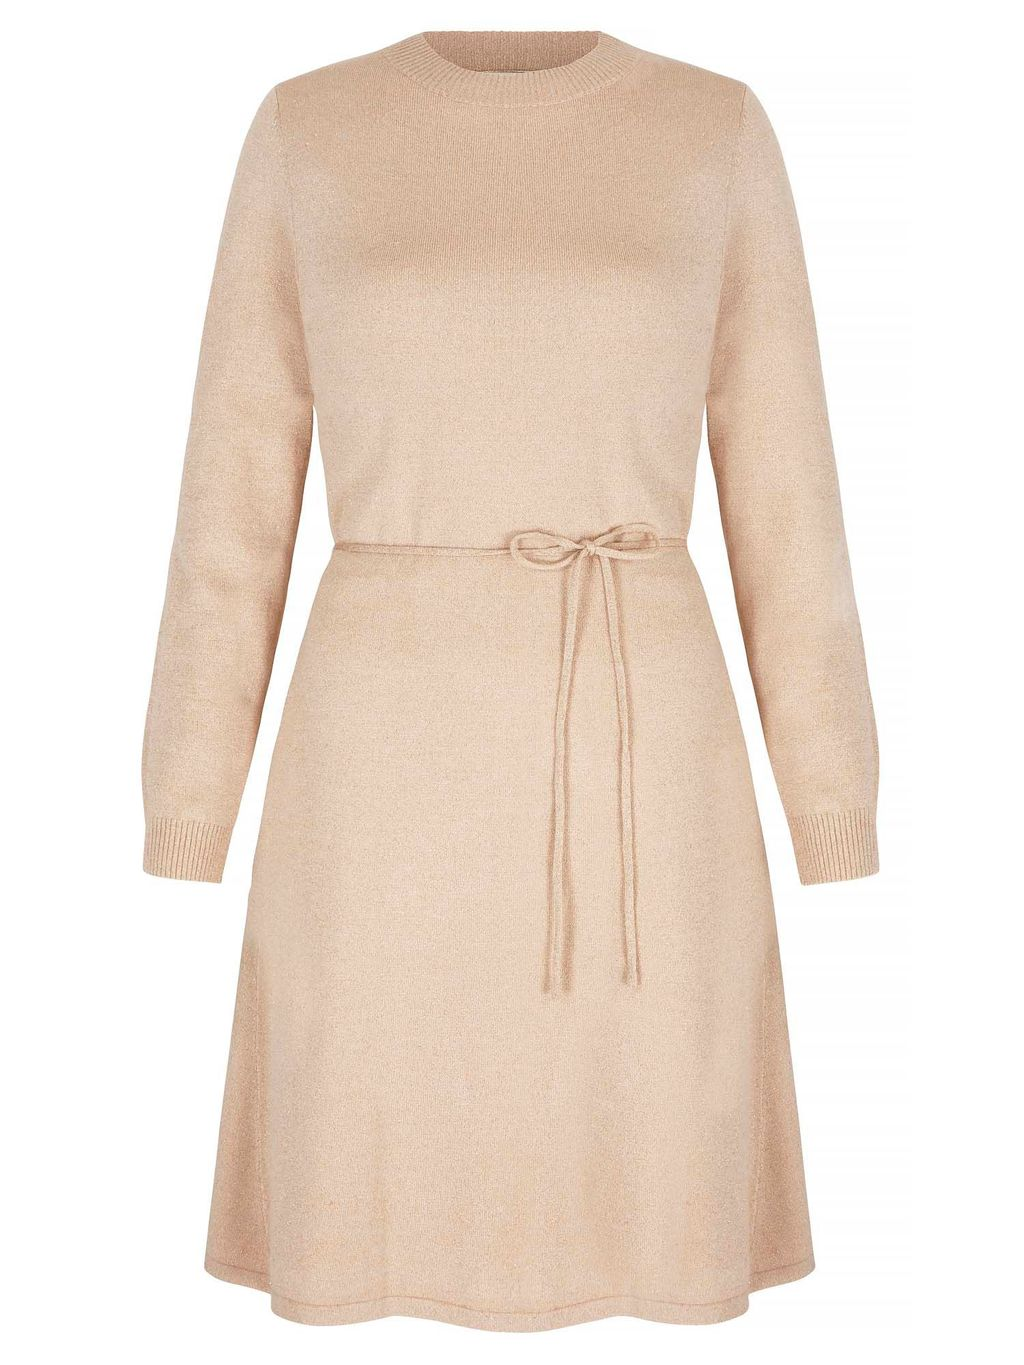 Lurex Knit Skater Dress, Gold Metallic - pattern: plain; waist detail: belted waist/tie at waist/drawstring; predominant colour: nude; occasions: casual; length: just above the knee; fit: fitted at waist & bust; style: fit & flare; neckline: crew; sleeve length: long sleeve; sleeve style: standard; texture group: knits/crochet; pattern type: fabric; fibres: viscose/rayon - mix; season: s/s 2016; wardrobe: basic